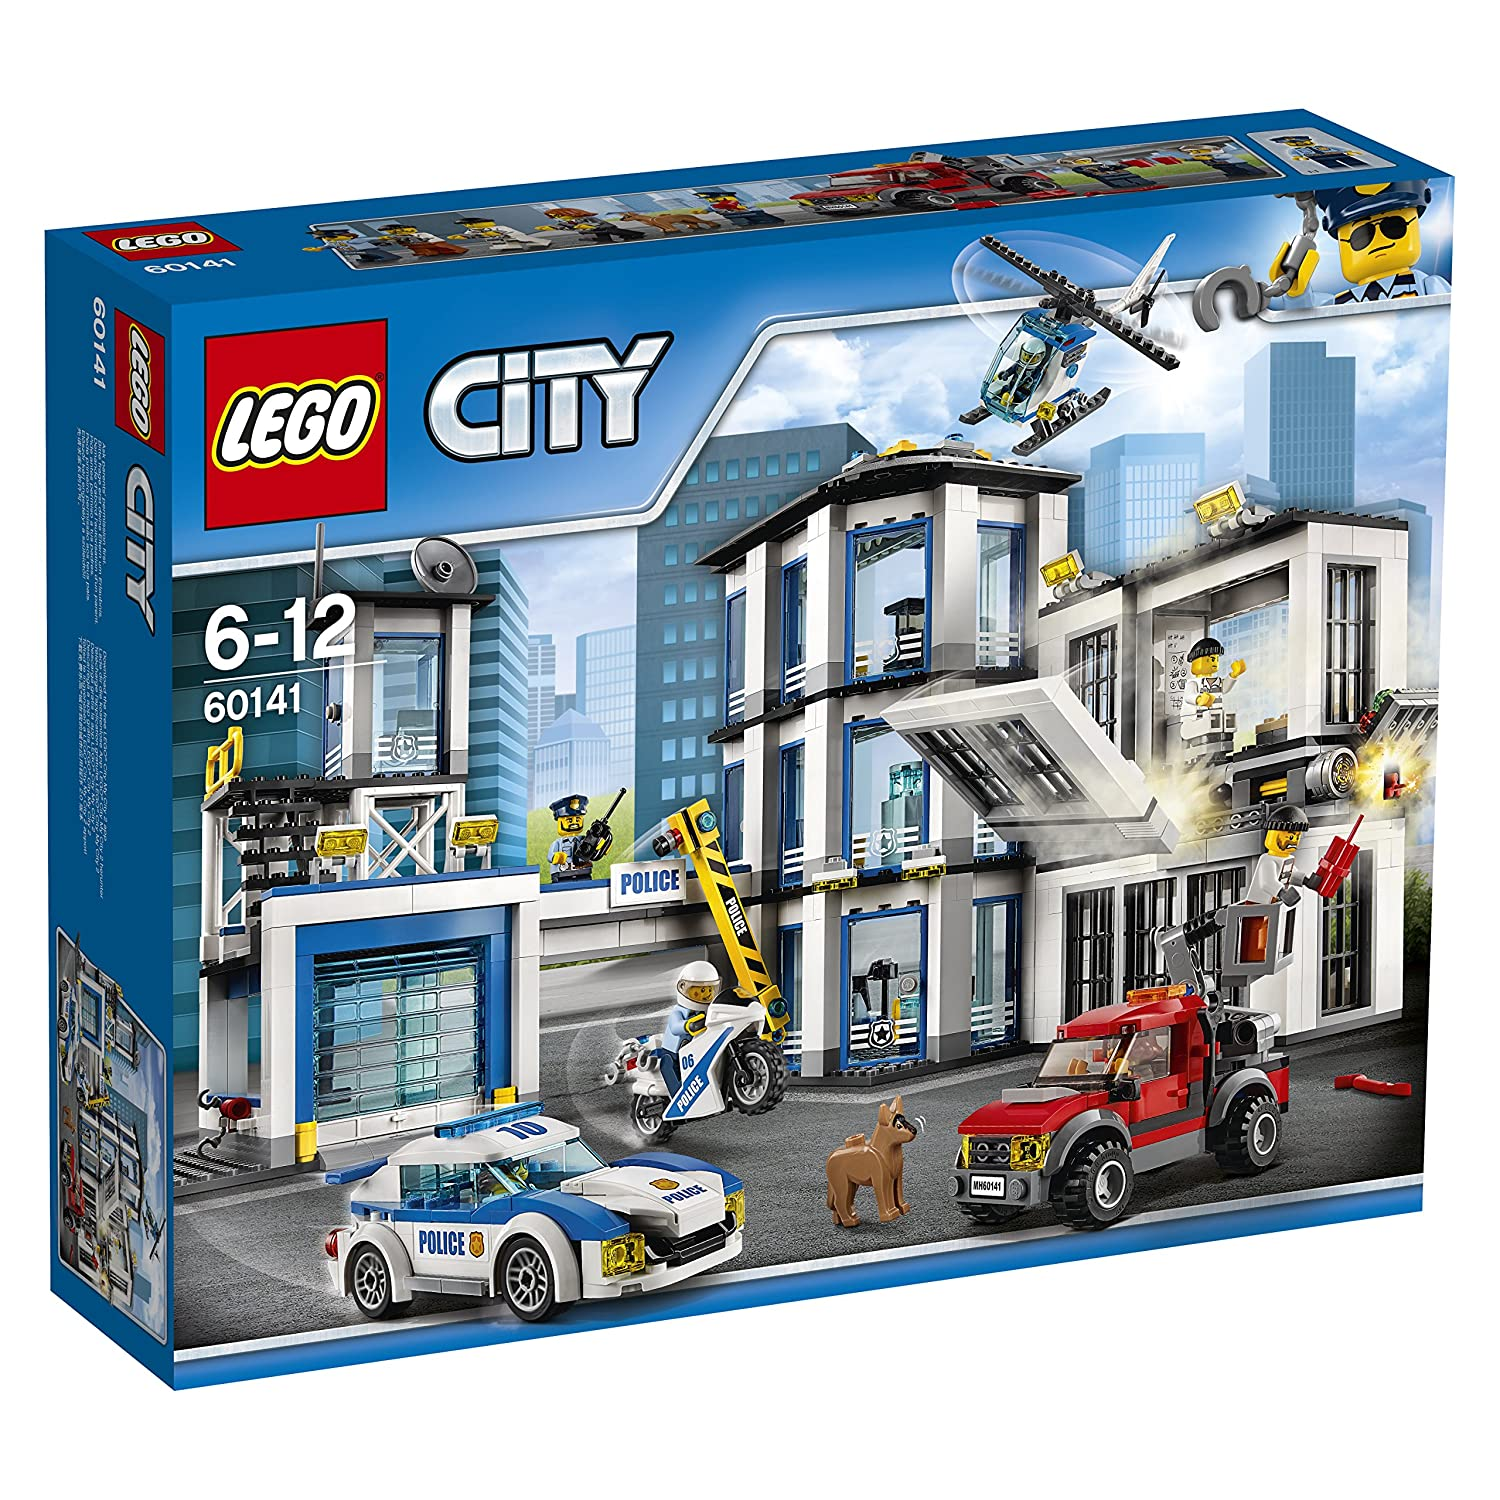 Lego - 60141 - City Police - Stazione di Polizia (Catalogo Lego 2017) per 89,99€ (invece di 99,99€) @amazon.it